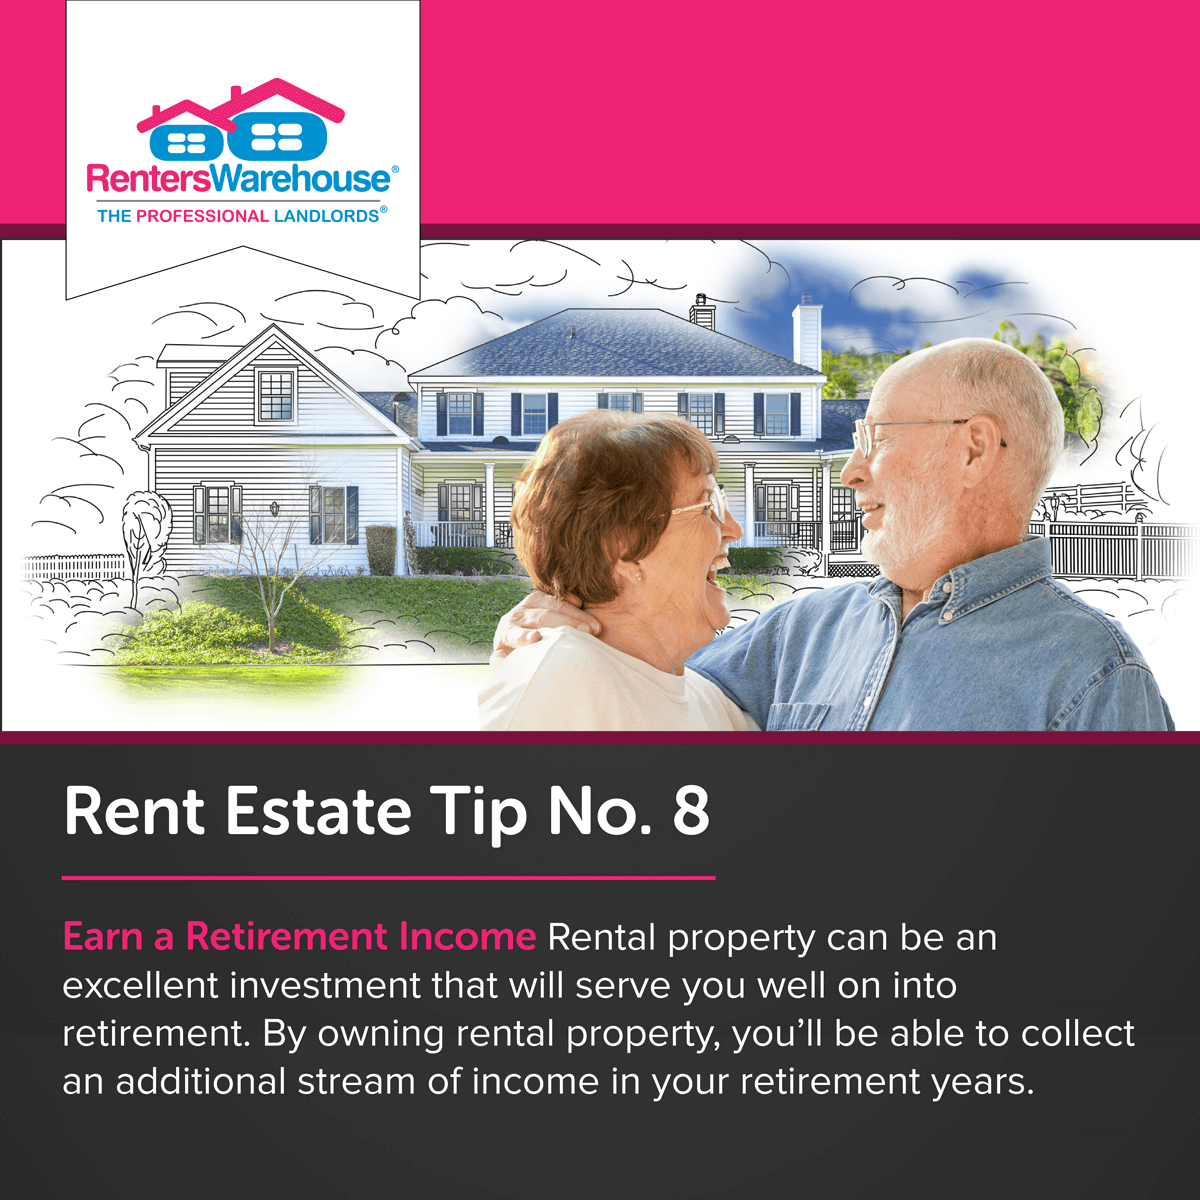 Image related to Rent Estate™ Tip No. 8 - Earn a Retirement Income